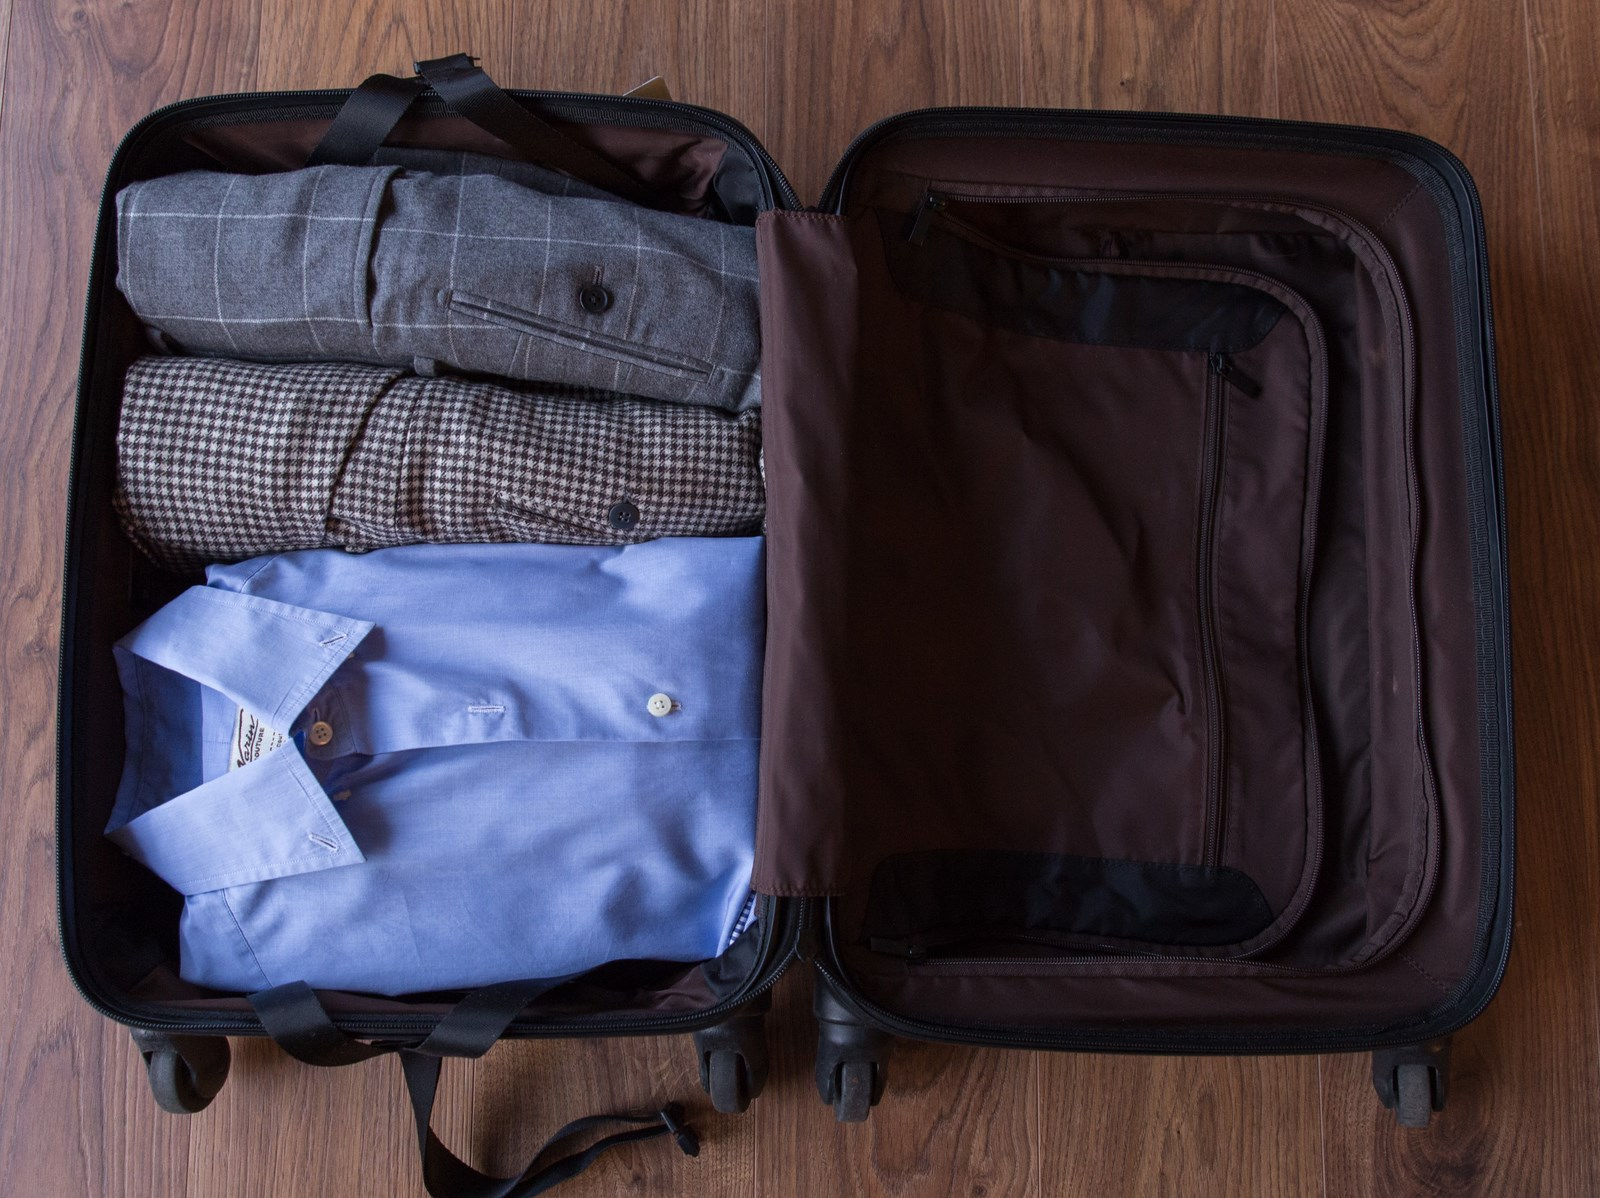 Jacket and trousers packed in a suitcase